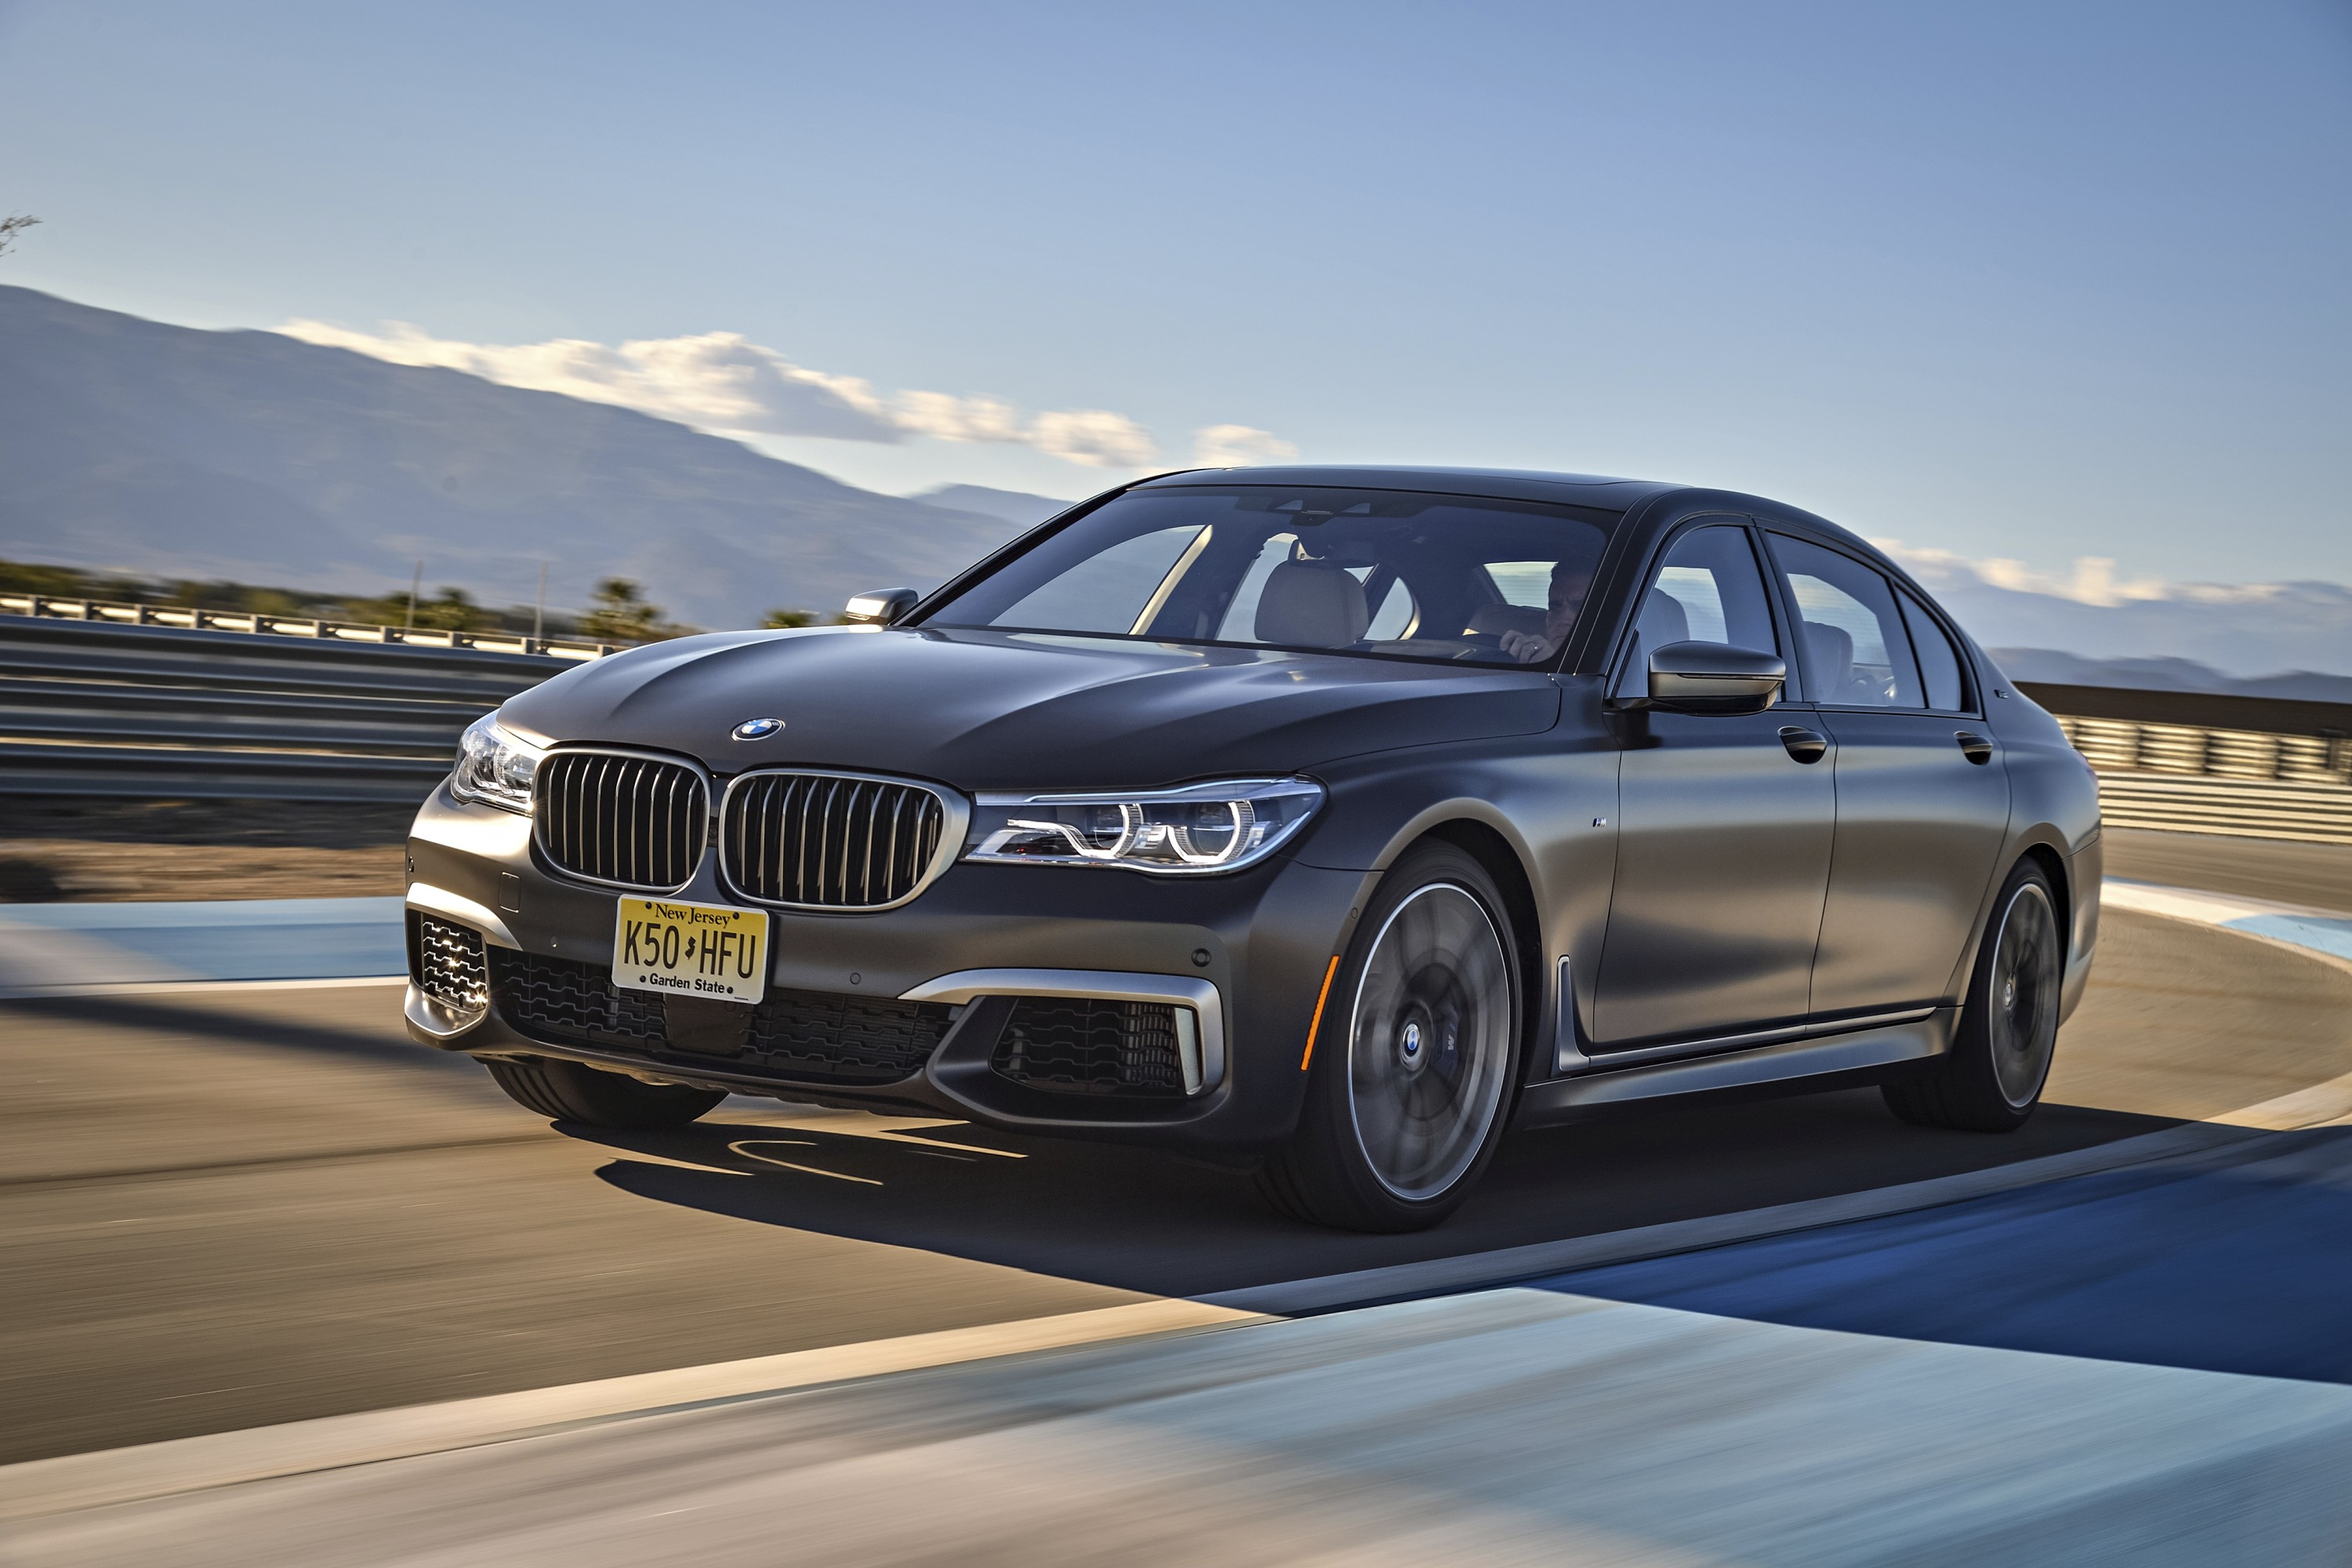 2018 Bmw M760li Xdrive Test Drive And Review Specifications Pricing